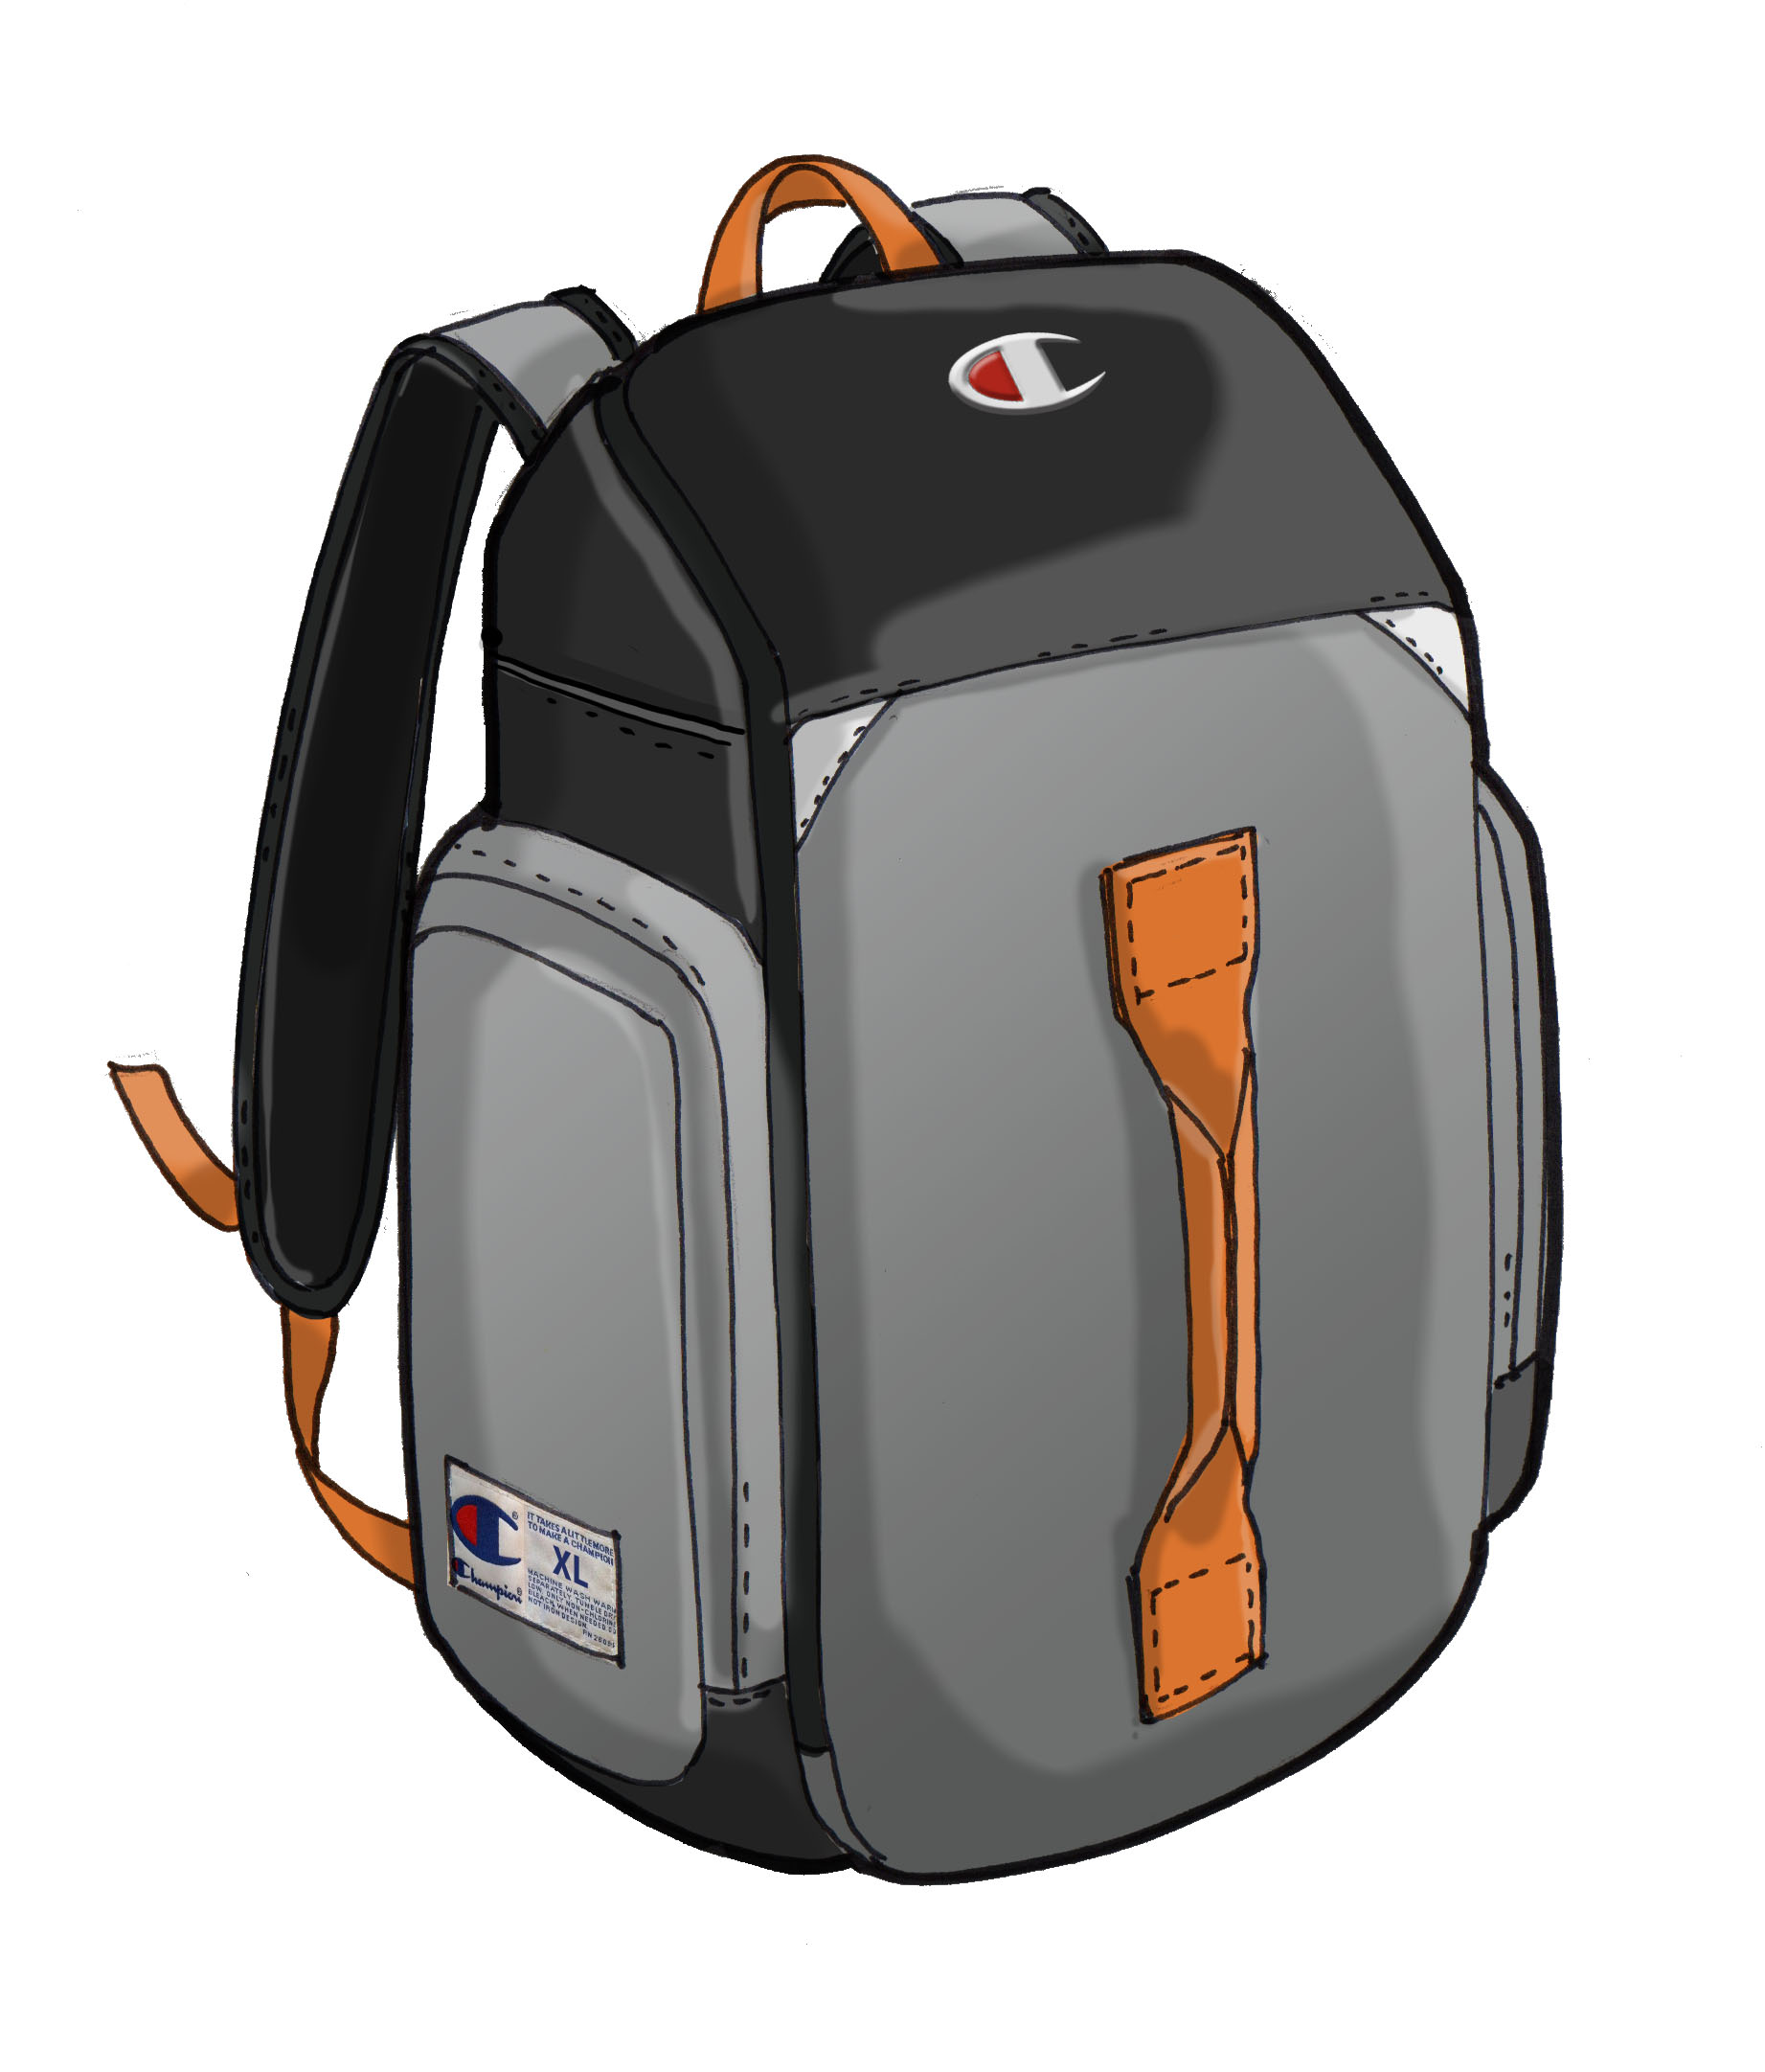 Champion Backpack 04 - A.jpg